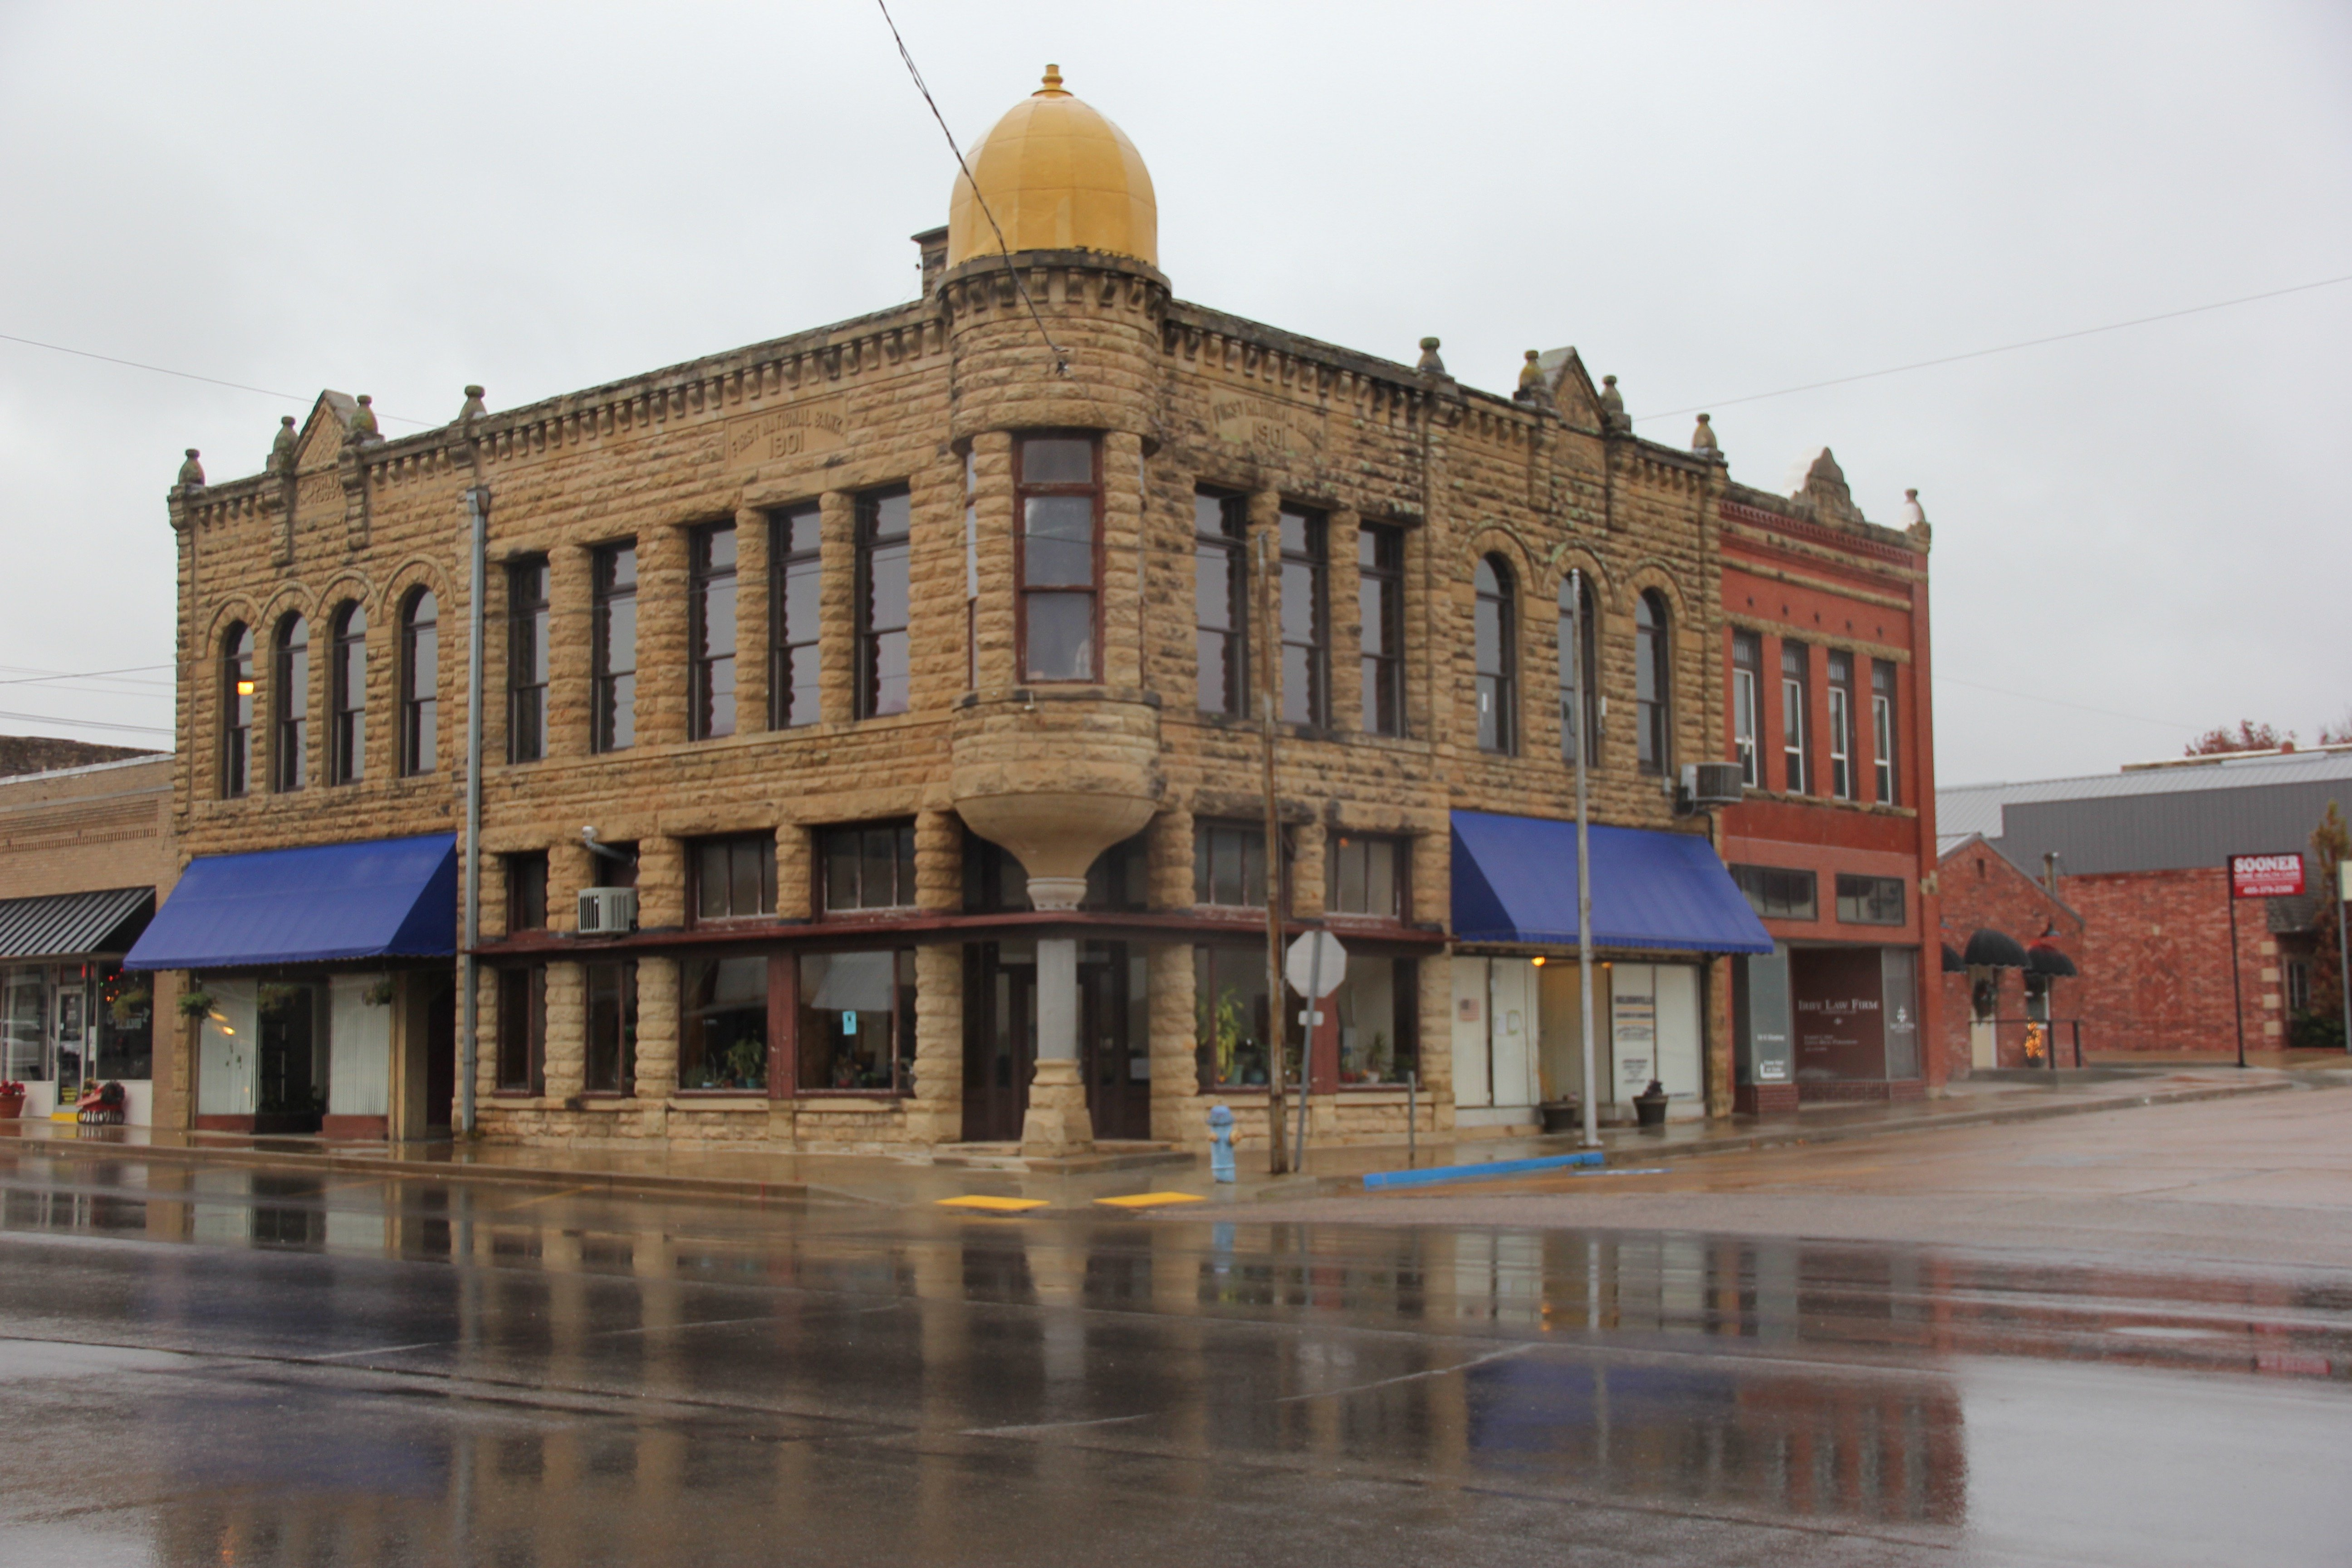 """Main Street in downtown Holdenville. Brownie remembered how he and his friends used to """"drag main every Saturday night"""" They'd go up and down the block in their muscle cars."""